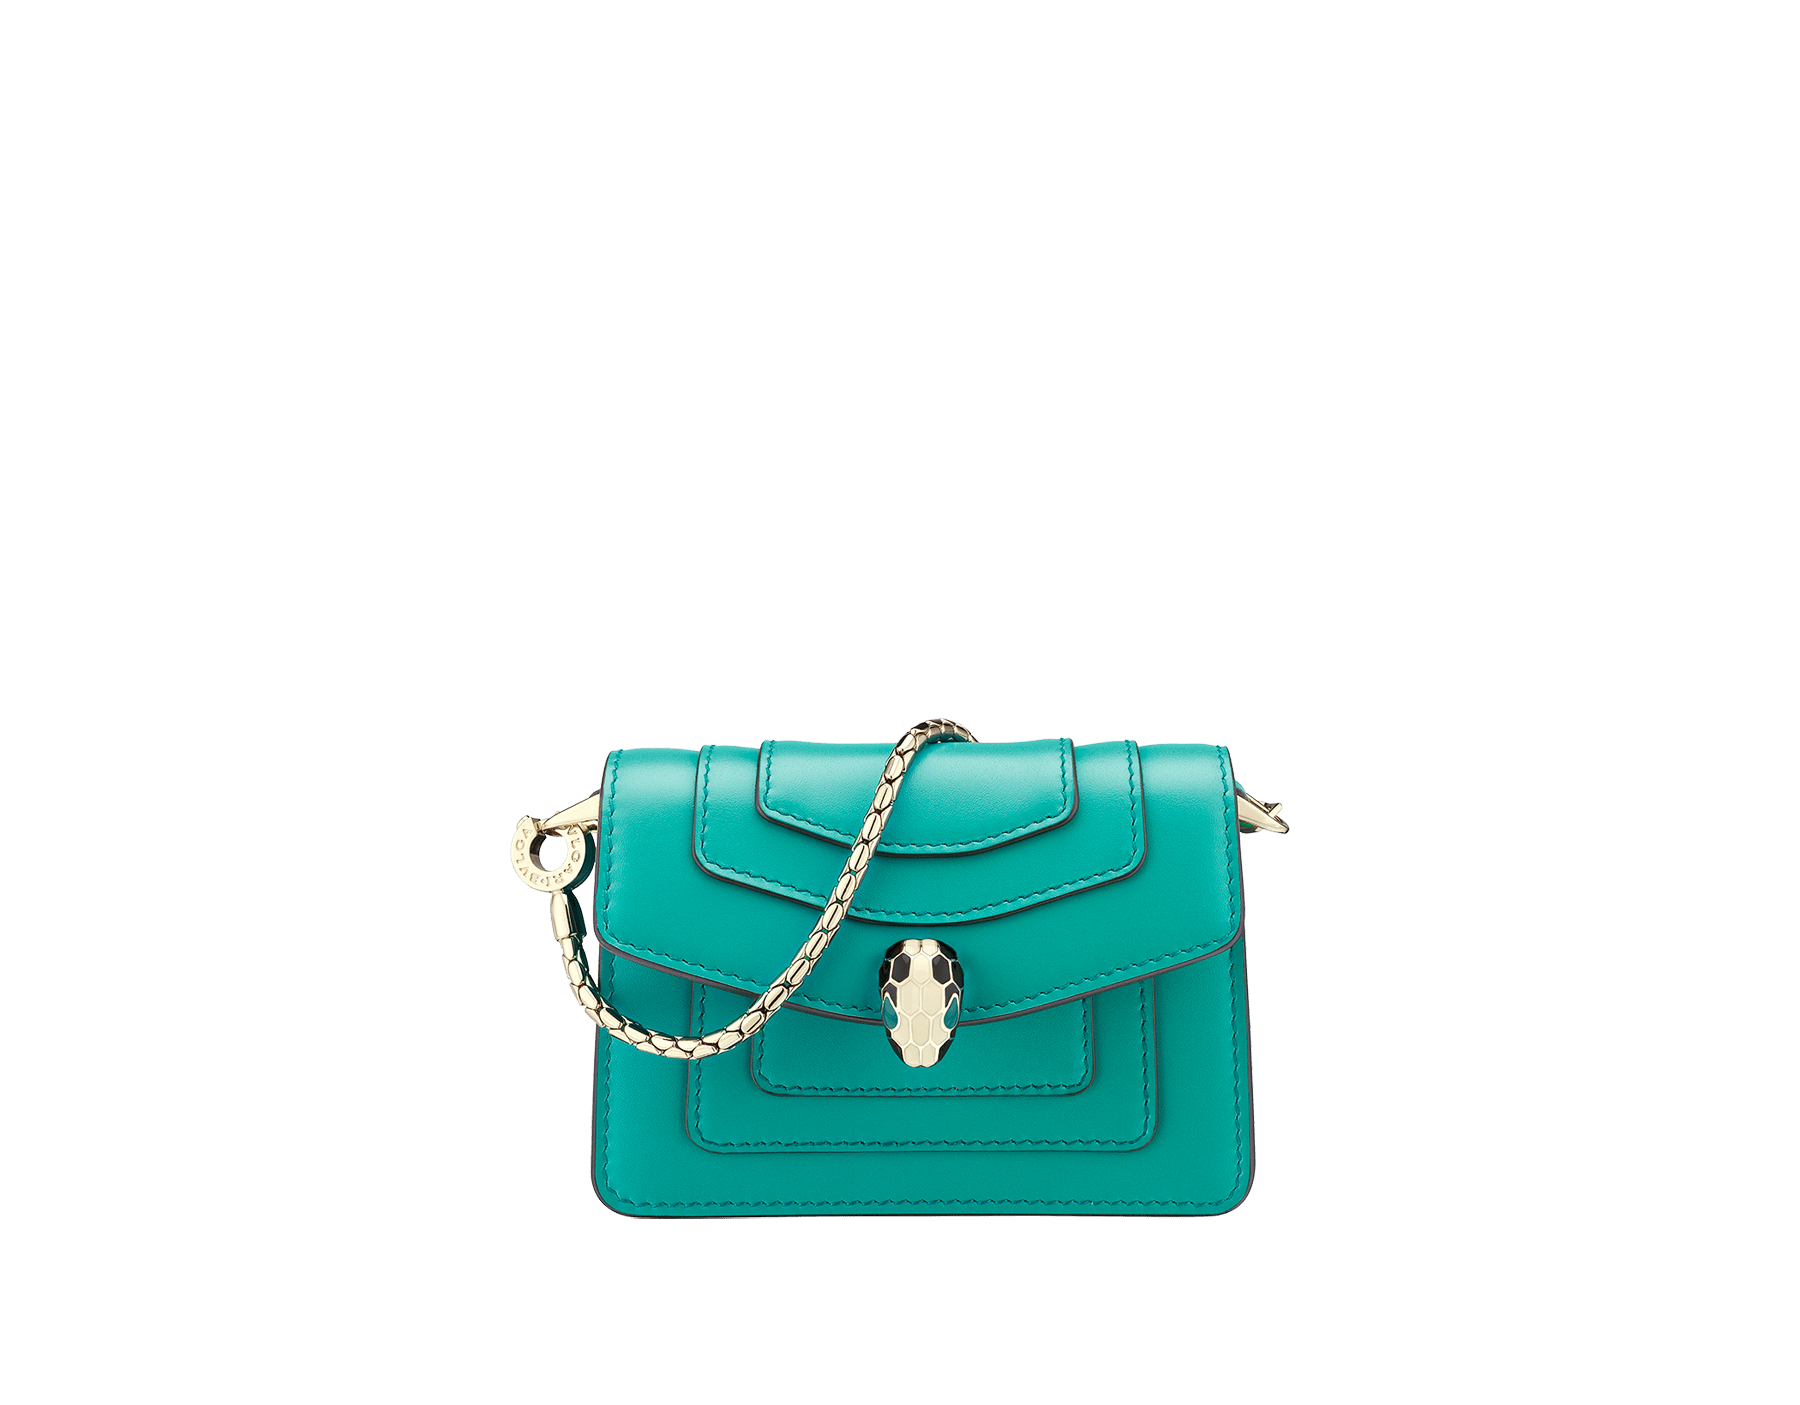 Bag charm Serpenti Forever miniature in tropical tourquoise calf leather, with deep jade calf leather lining. Iconic brass light gold plated snakehead stud closure enameled in black and white and finished with green enamel eyes. 288371 image 1